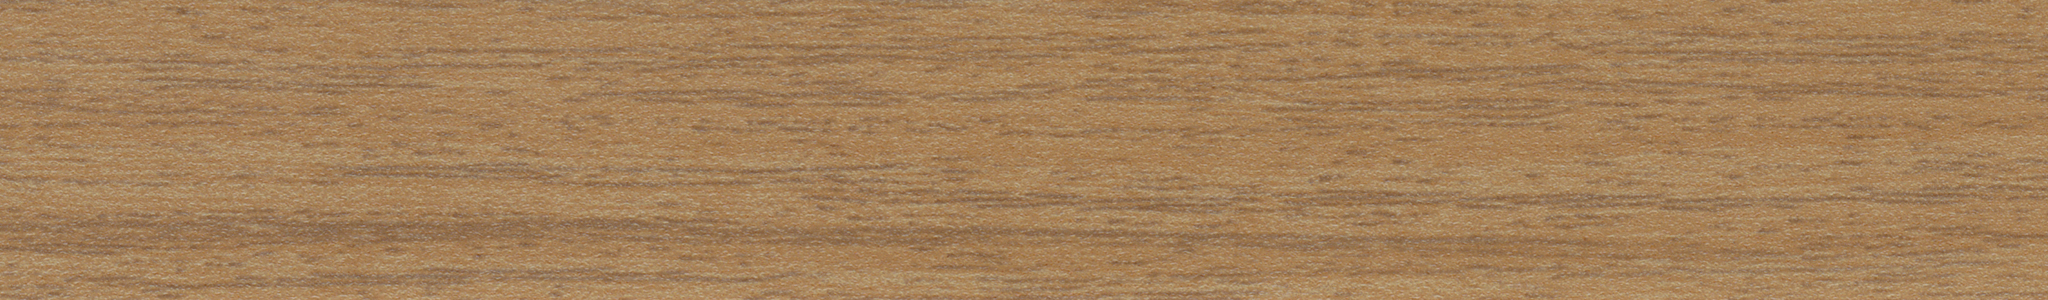 HD 283703 ABS Edge Walnut Aida Pearl